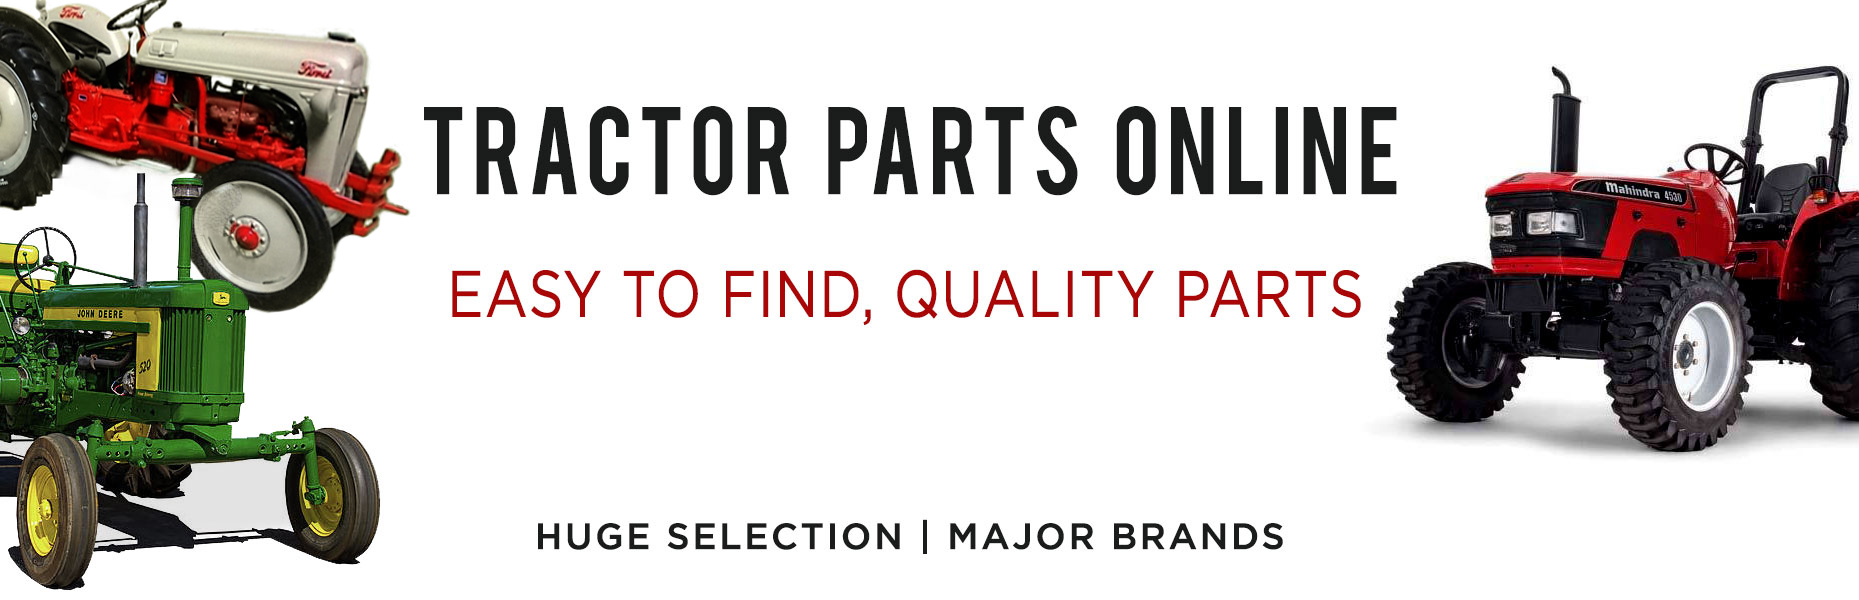 Huge Inventory of Tractor Parts | Lawn Mower Parts Online